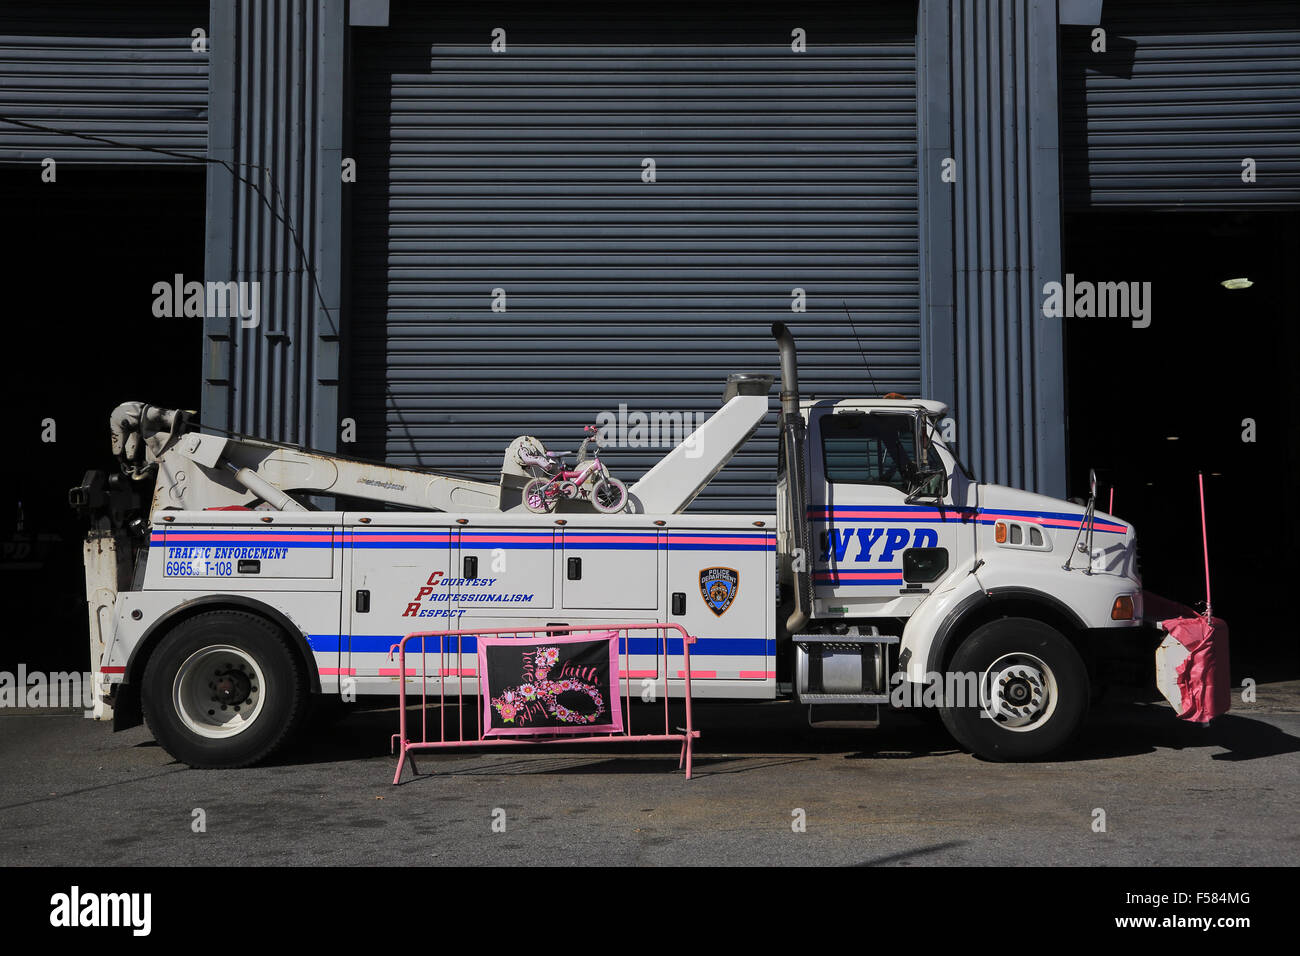 Heavy NYPD police tow truck parking in Violation tow Service pier 76 tow pound. at west side of Manhattan New York - Stock Image